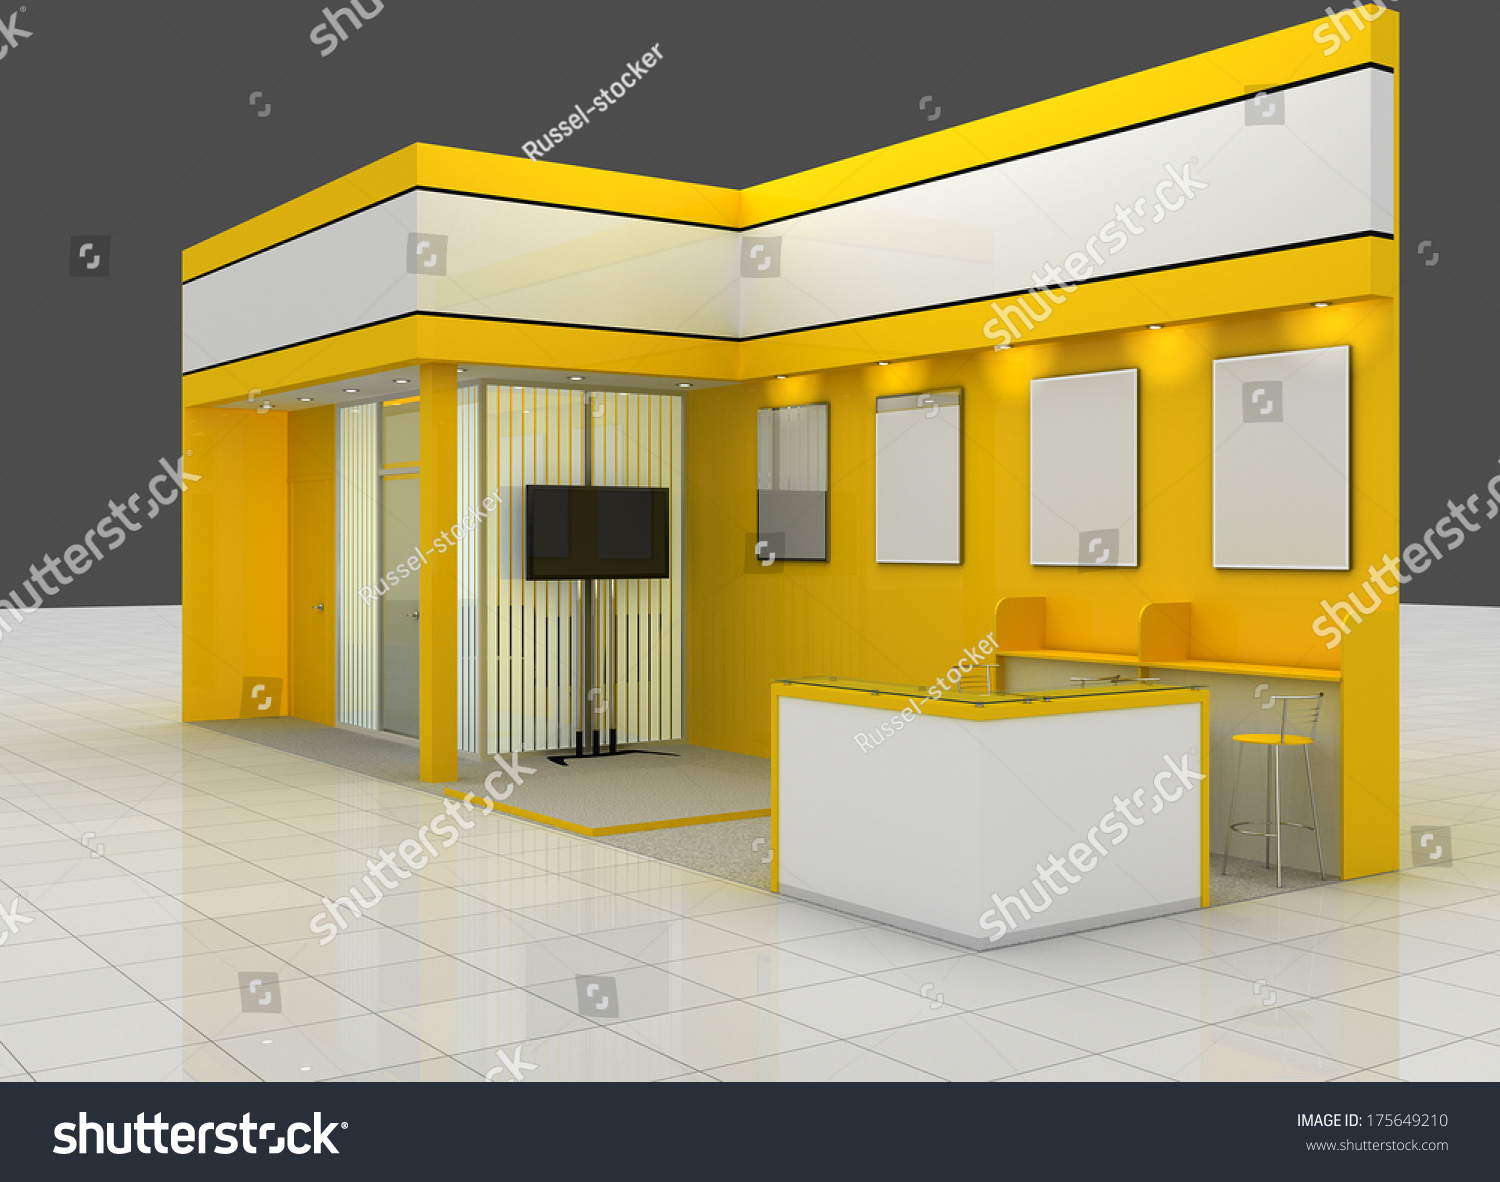 Expo Exhibition Stands Yellow : Exhibition stand render model expo yellow template design